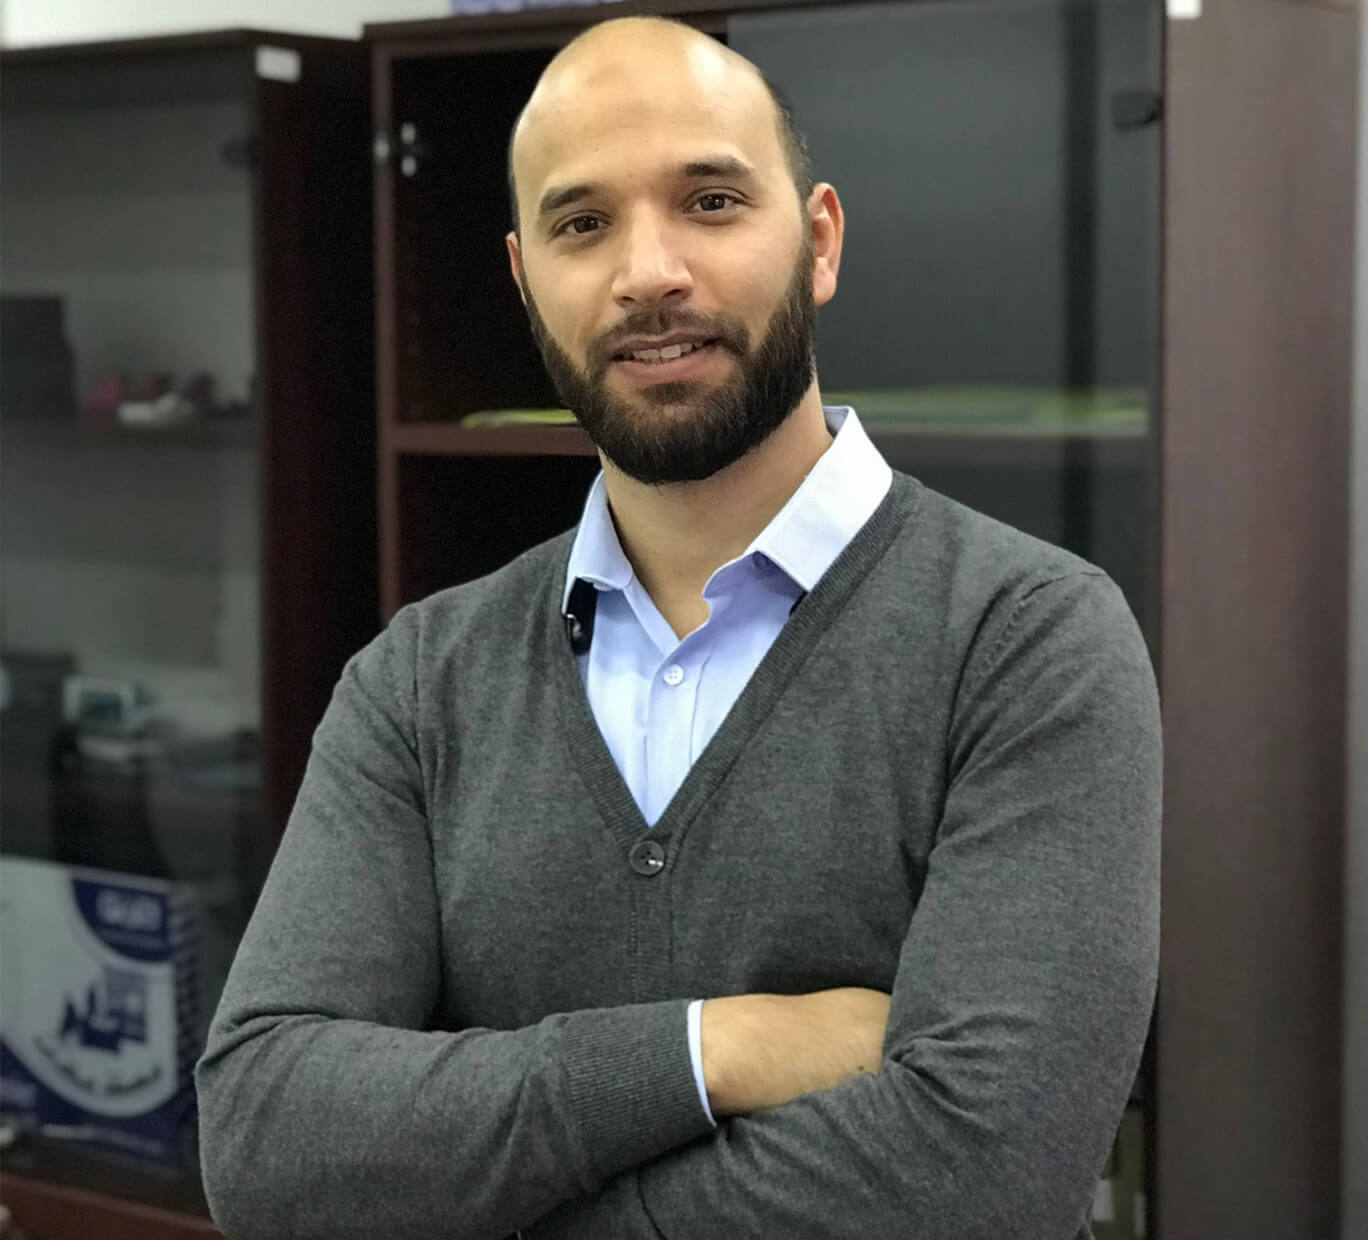 Mohammed Chalouli